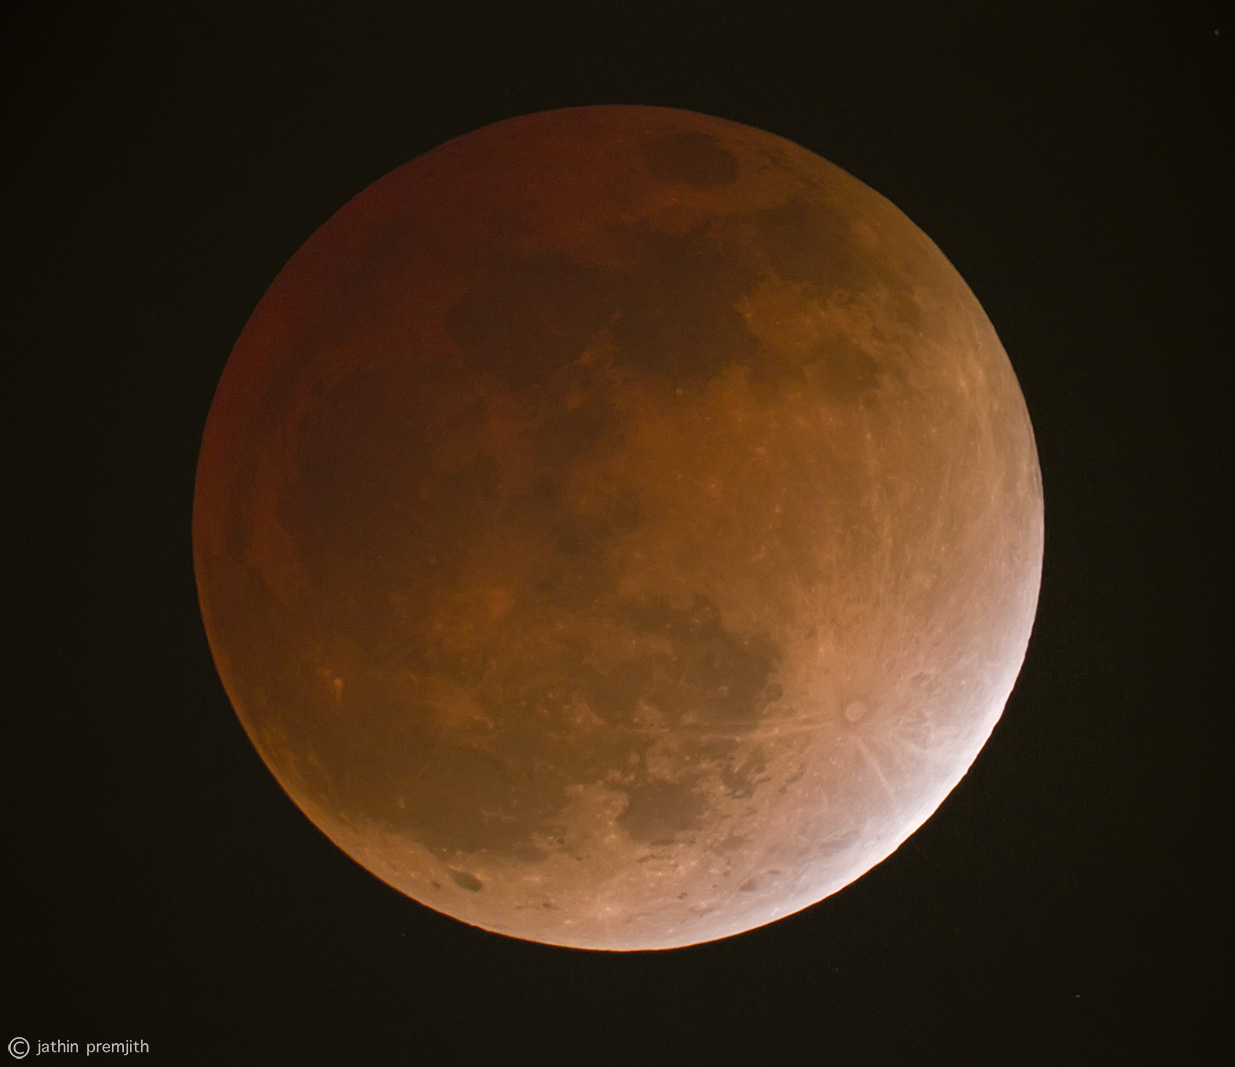 End of TOTALITY of Lunar Eclipse, 12th Dec, 2011